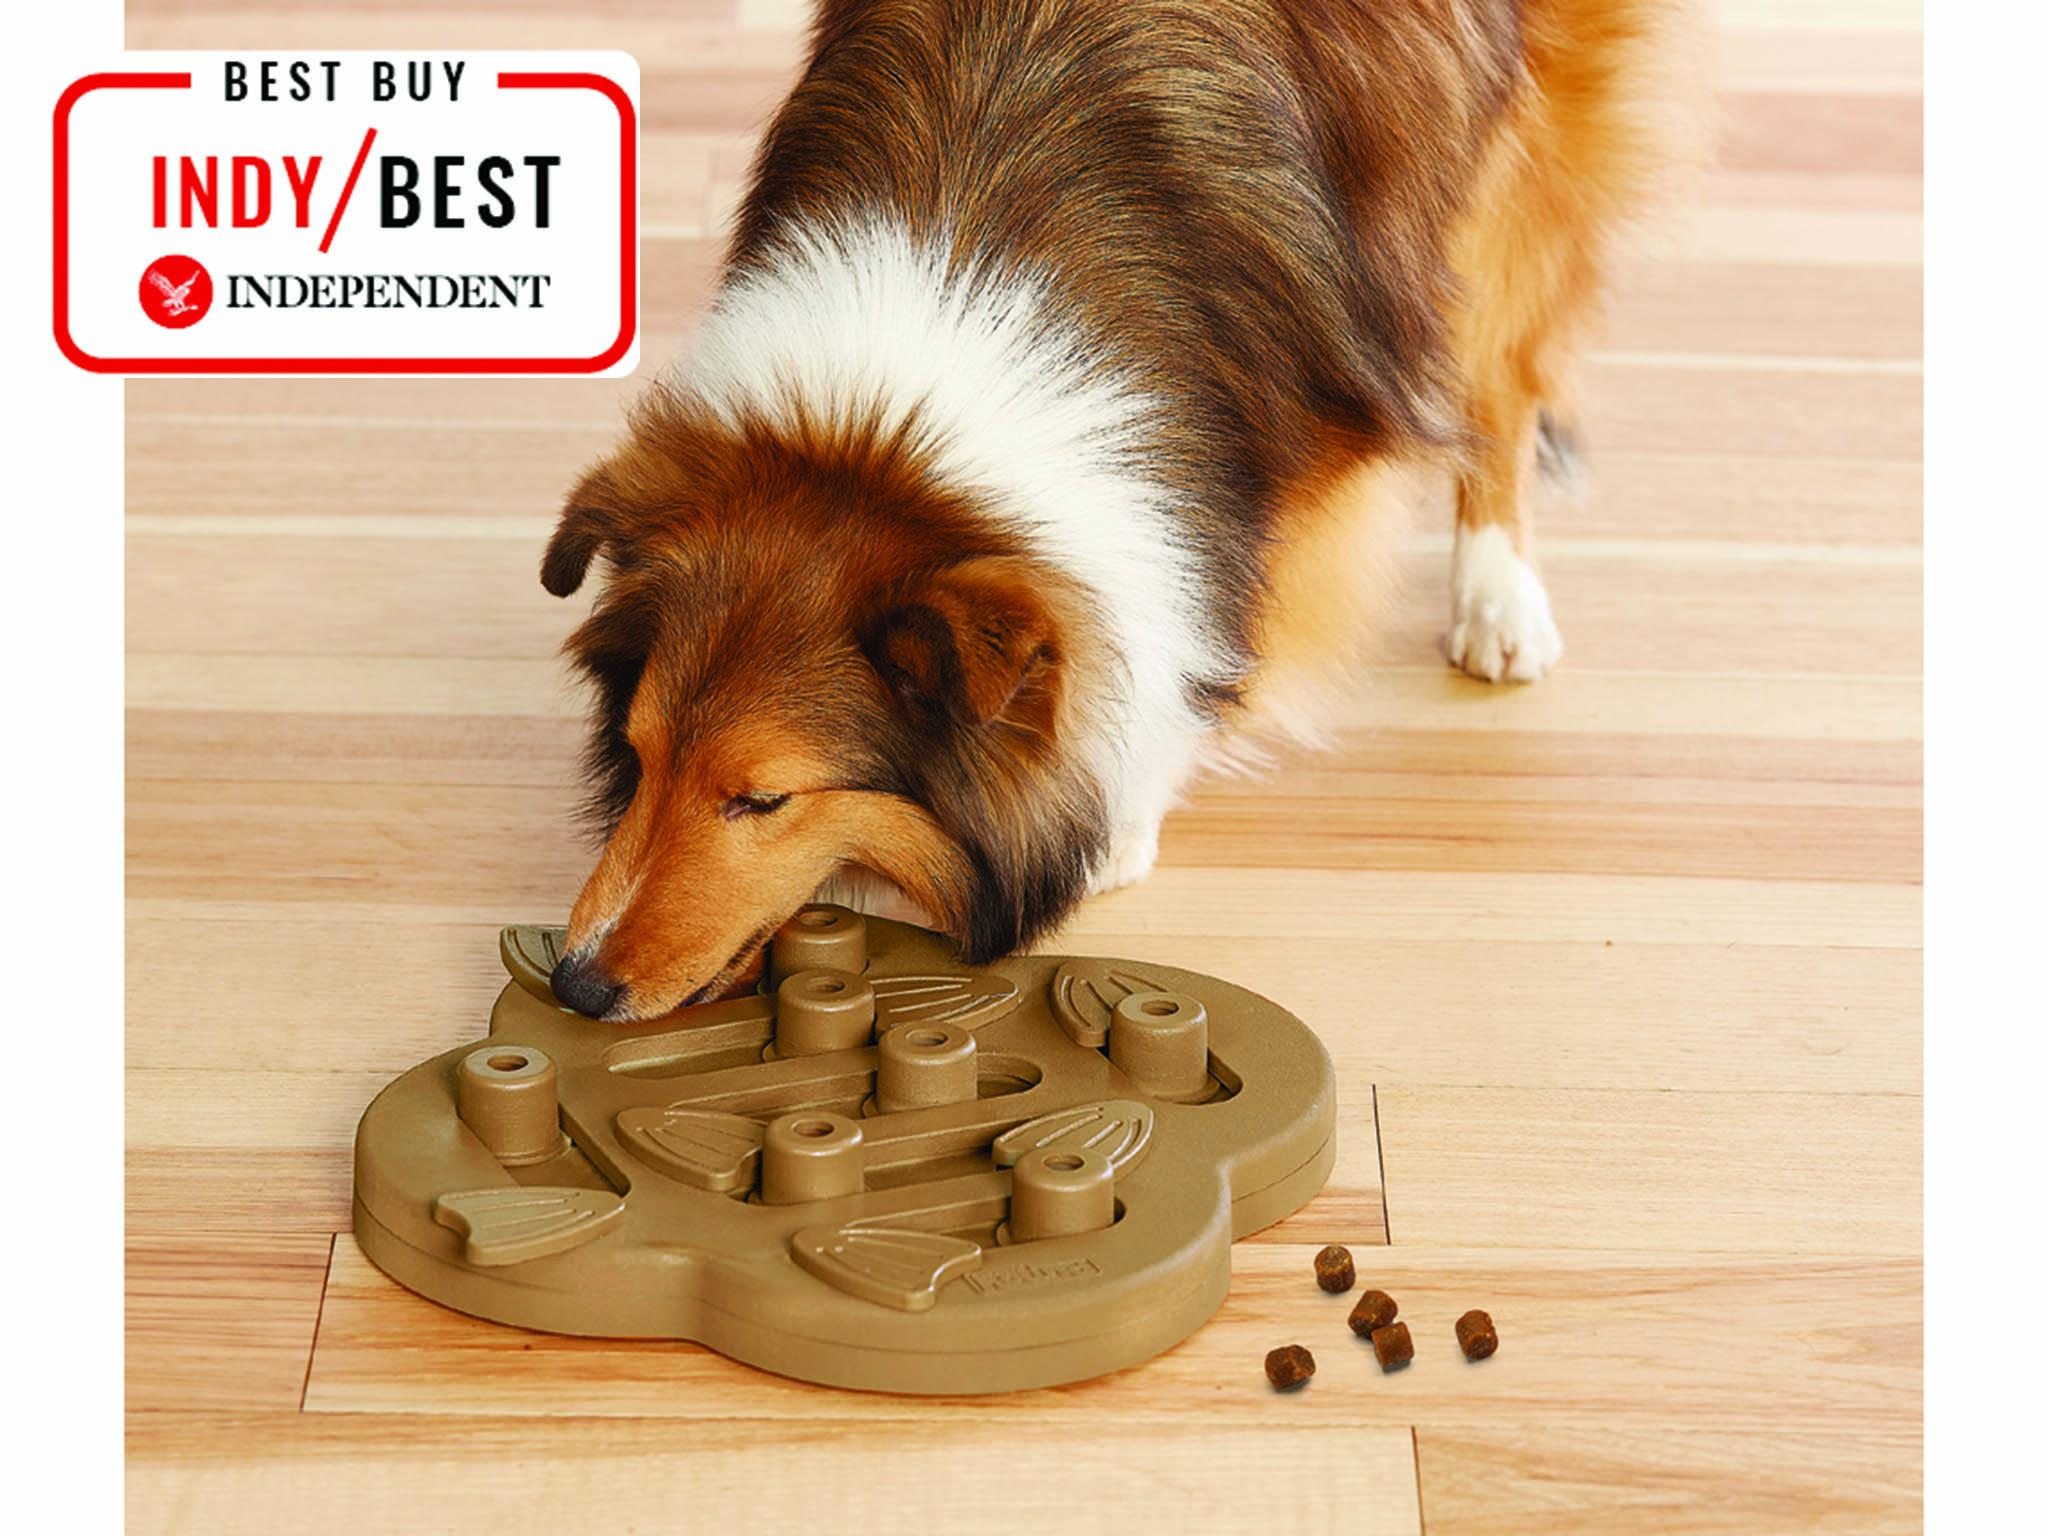 caa4792e2ed15d Our chief tester, a Jack Russell terrier, absolutely loved this toy from ...